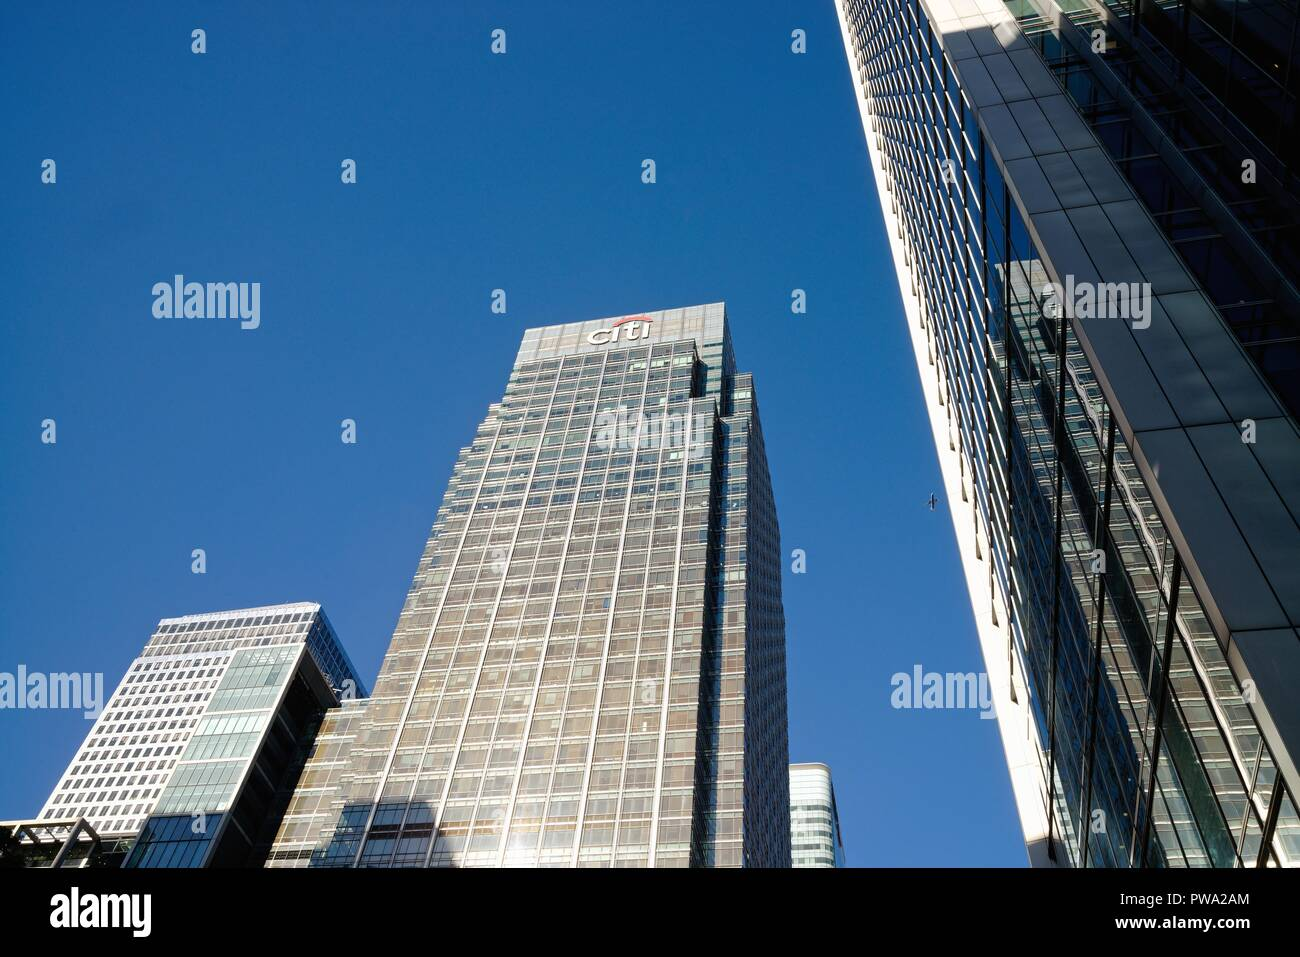 Headquarters of the Citi Bank at Canary Wharf Docklands London England UK - Stock Image